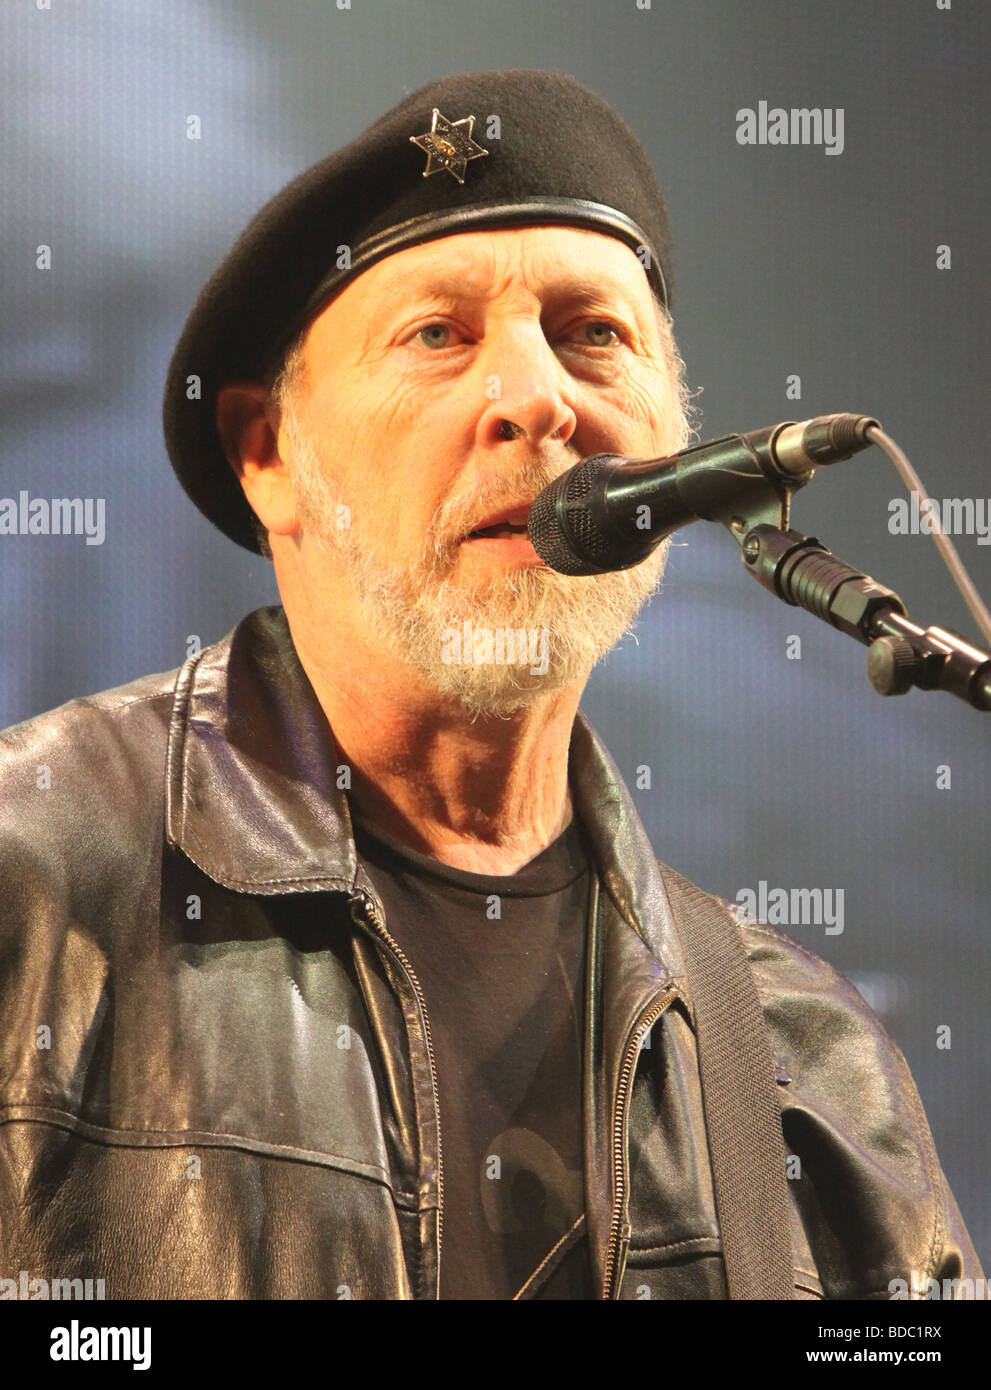 Richard Thompson at Fairport Conventions Cropredy Festival 15th August 2009 - Stock Image